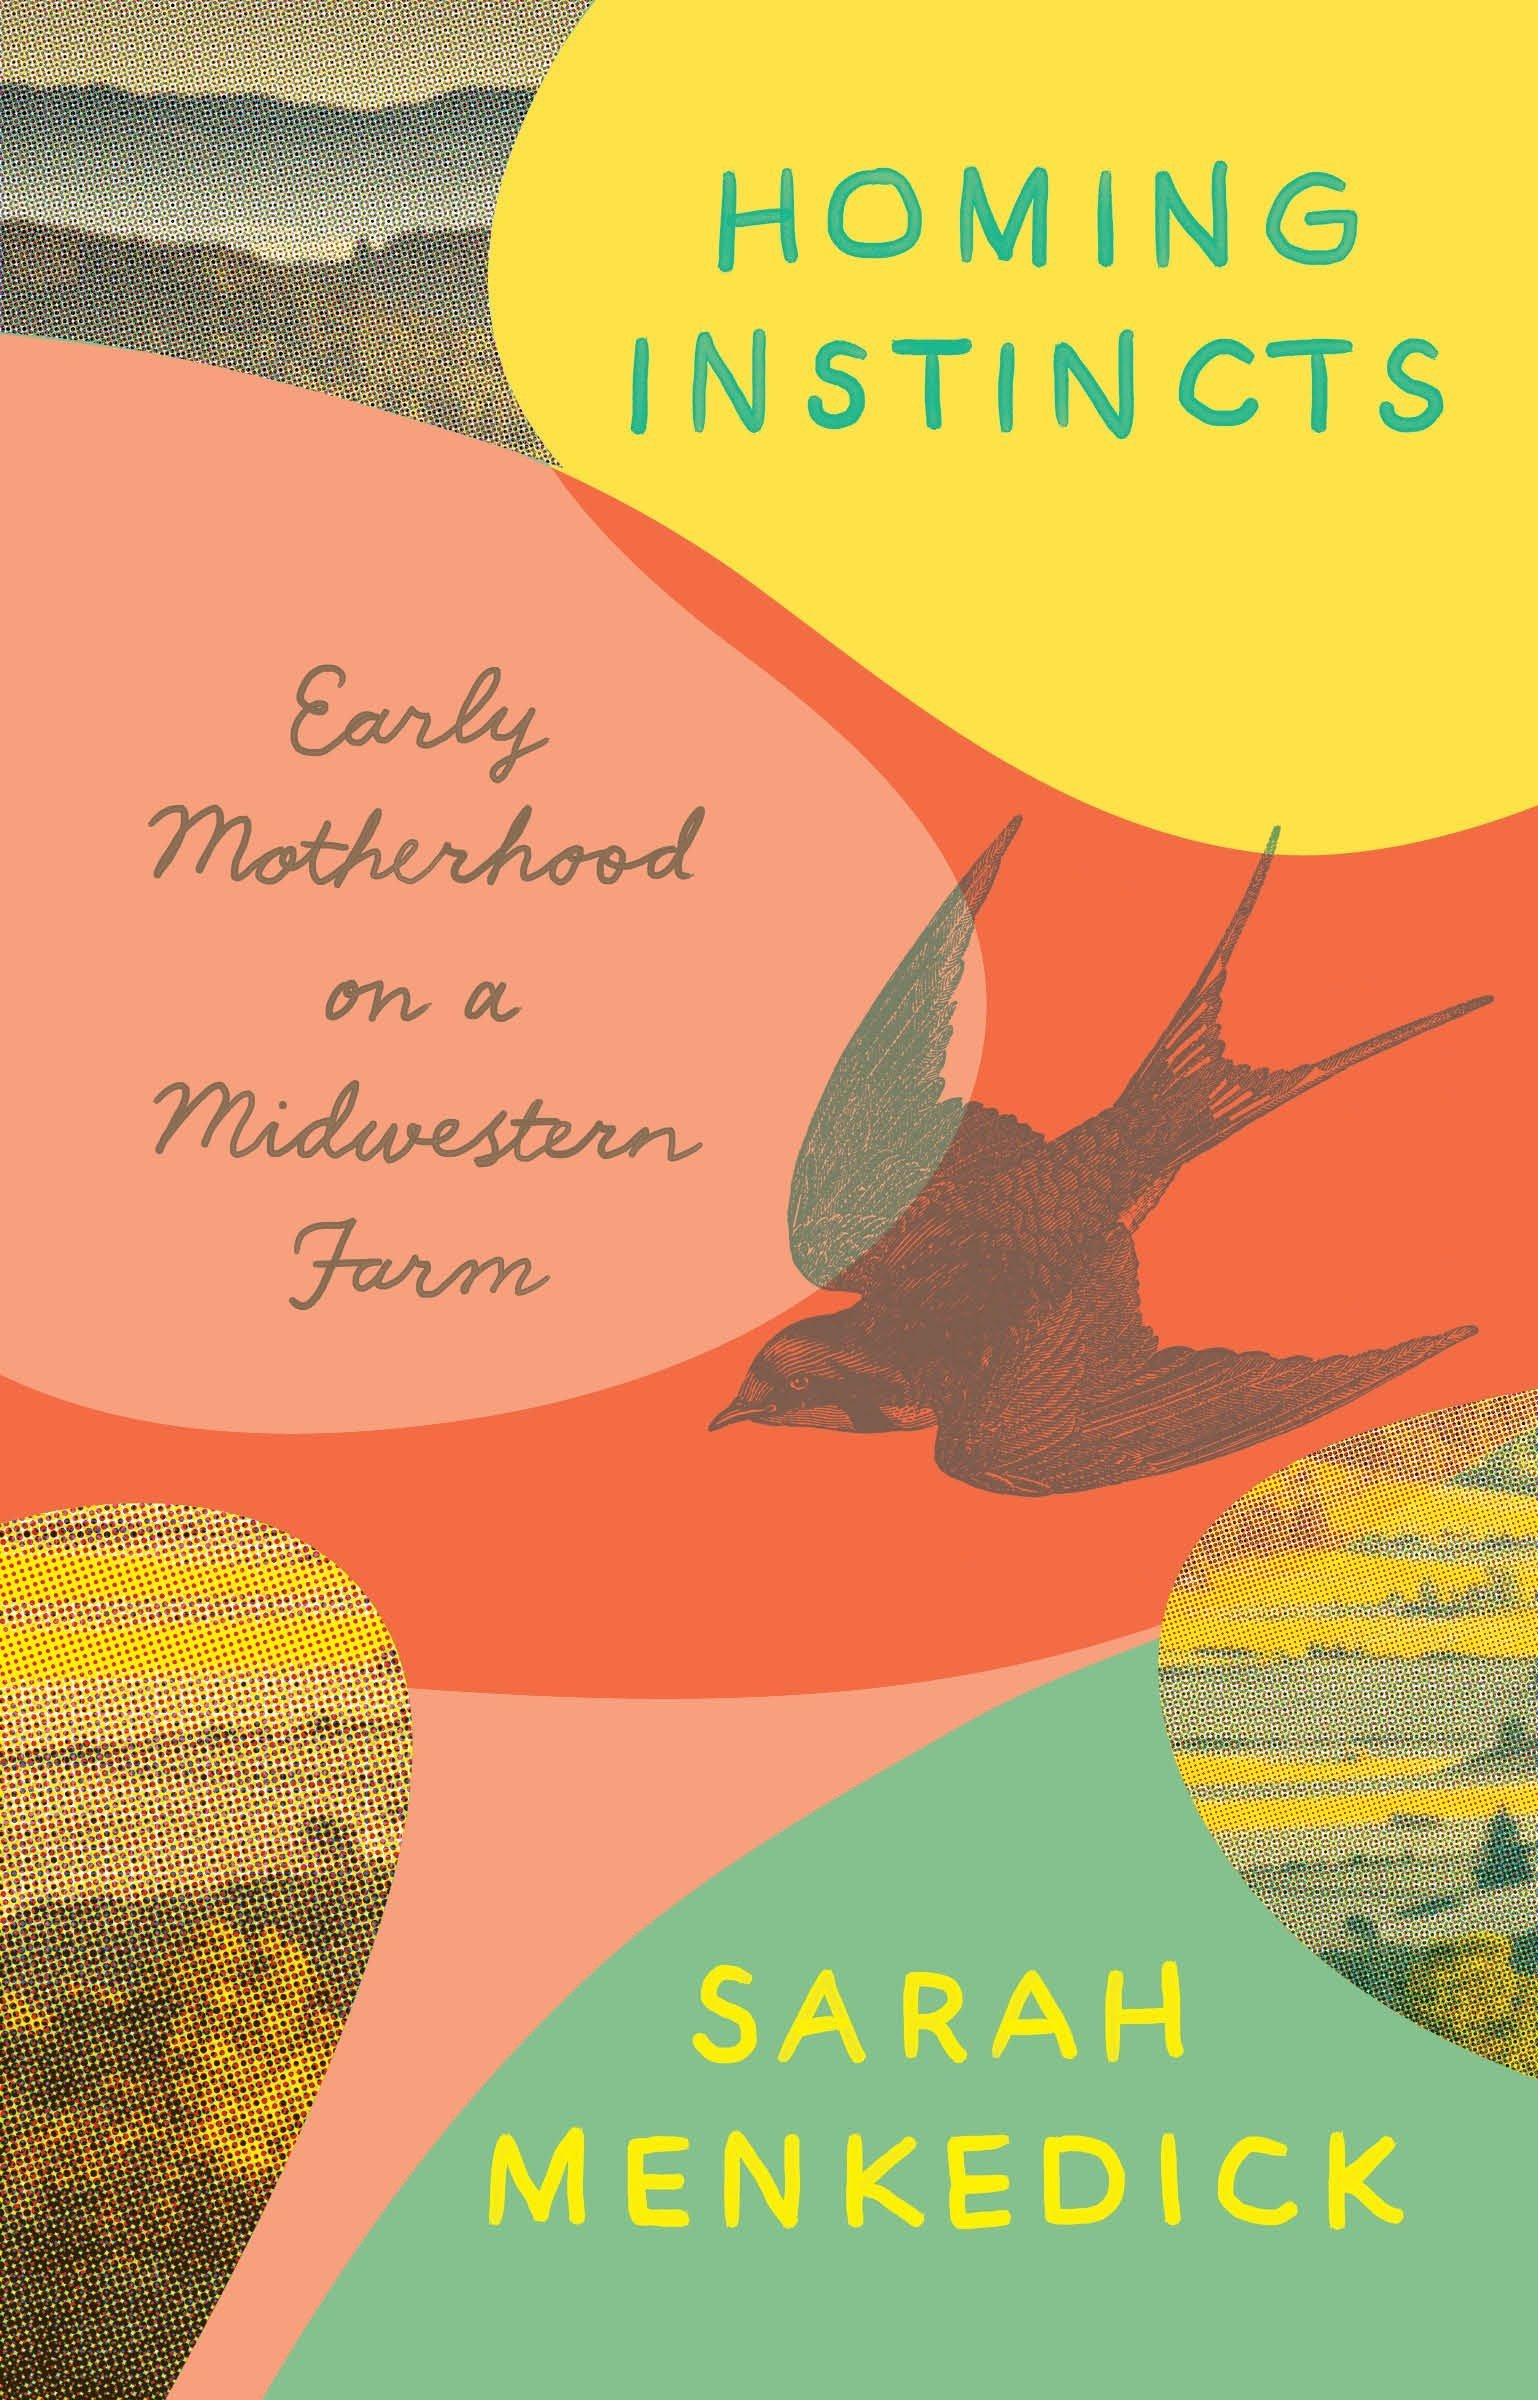 Read Online Homing Instincts: Early Motherhood on a Midwestern Farm PDF